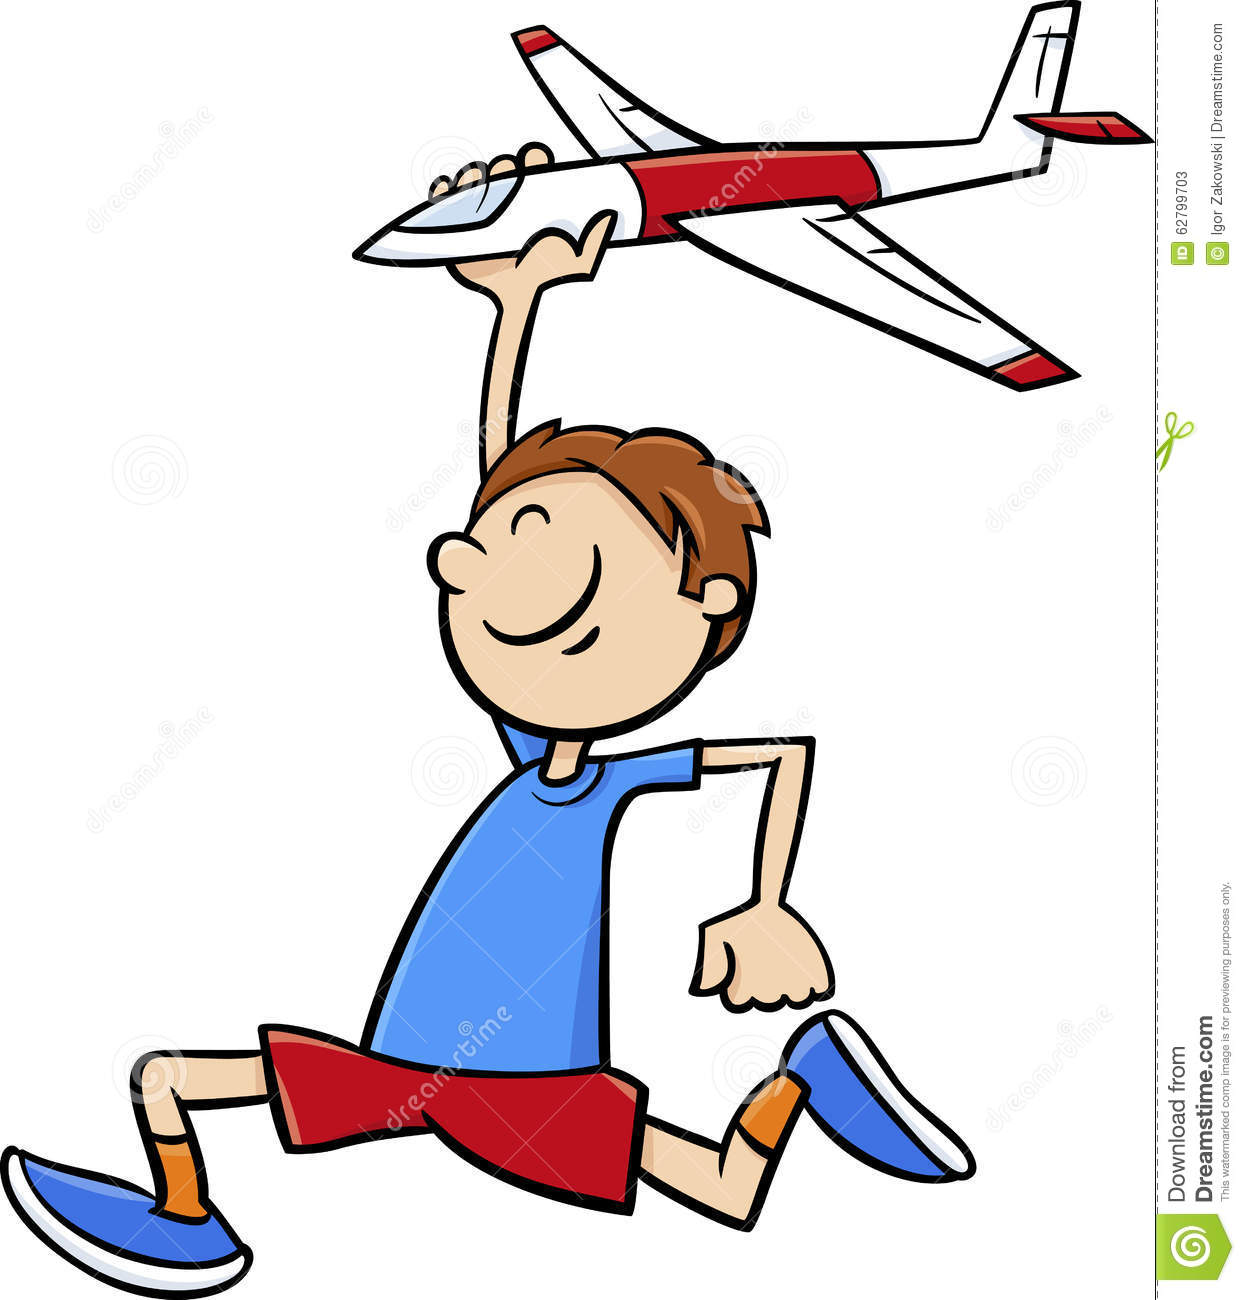 Toy Airplane Clipart.